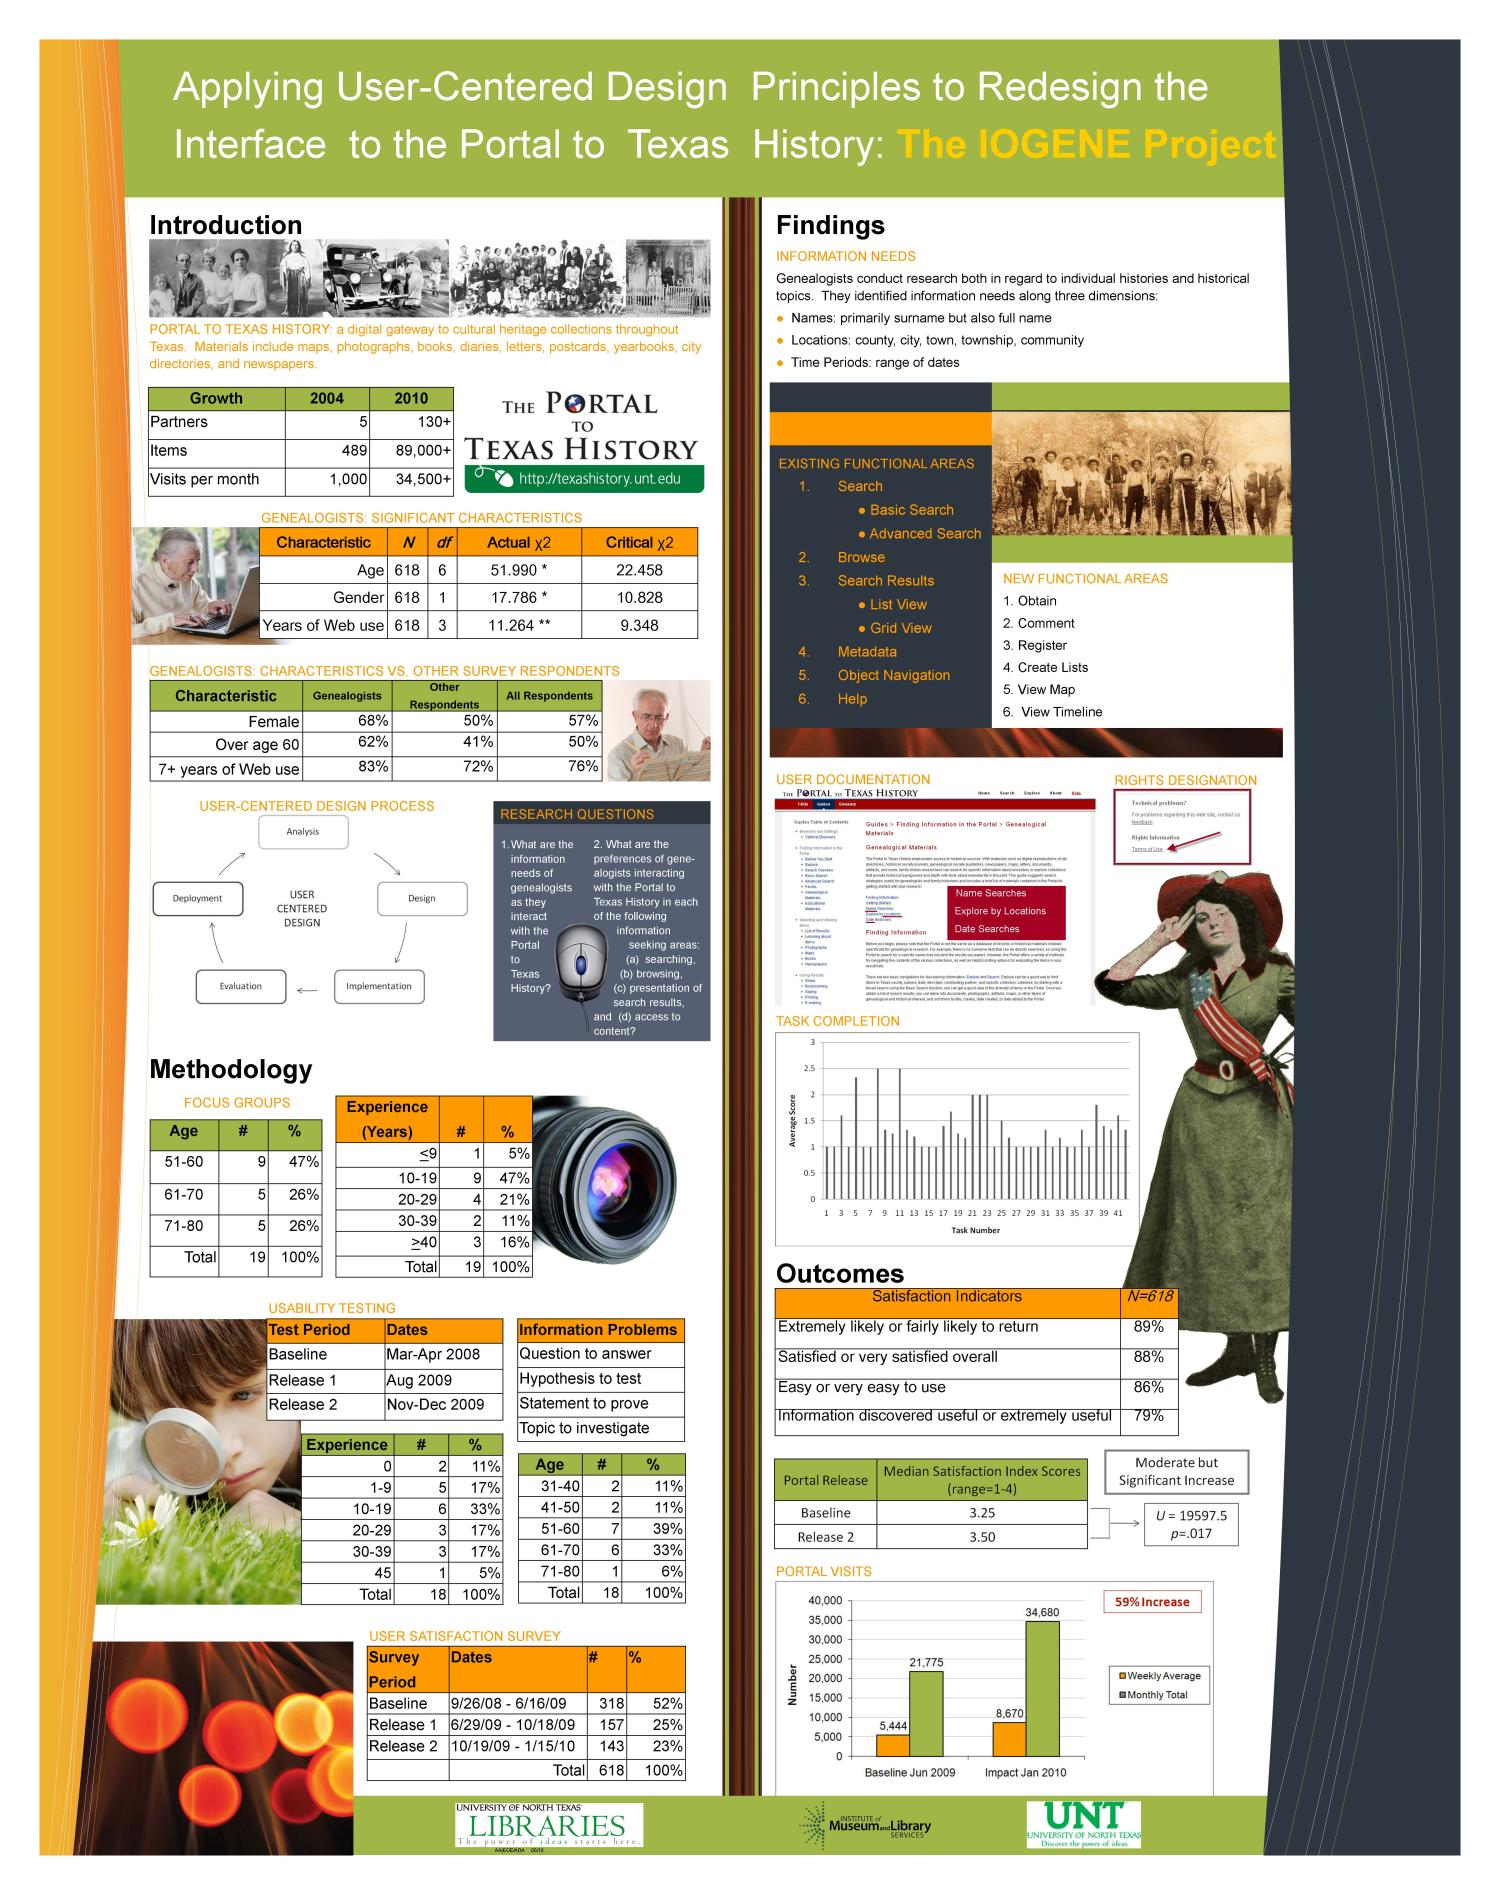 Applying User-Centered Design Principles to Redesign the Interface to The Portal to Texas History: The IOGENE Project [Poster]                                                                                                      [Sequence #]: 1 of 1